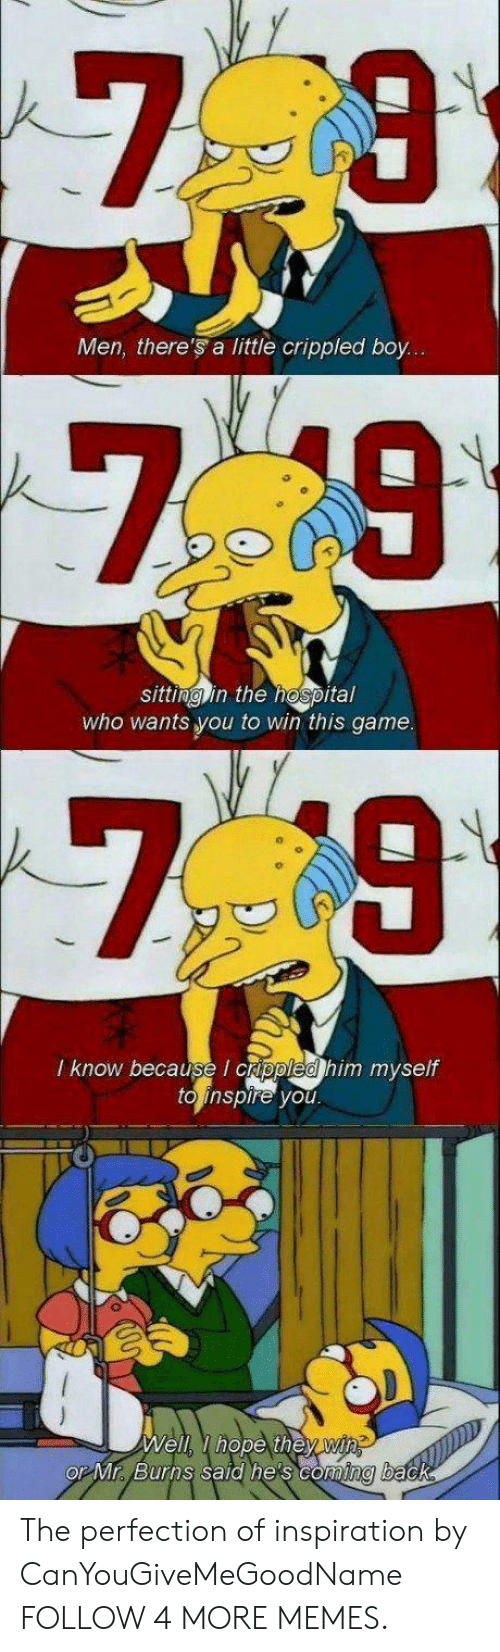 crippled: Men, there's a little crippled boy...  7 9  sitting in the hospital  who wants you to win this game.  7 9  I know because I crippled him myself  to inspire you  Well I hope they win  OP Mr Burns said he's coming back The perfection of inspiration by CanYouGiveMeGoodName FOLLOW 4 MORE MEMES.